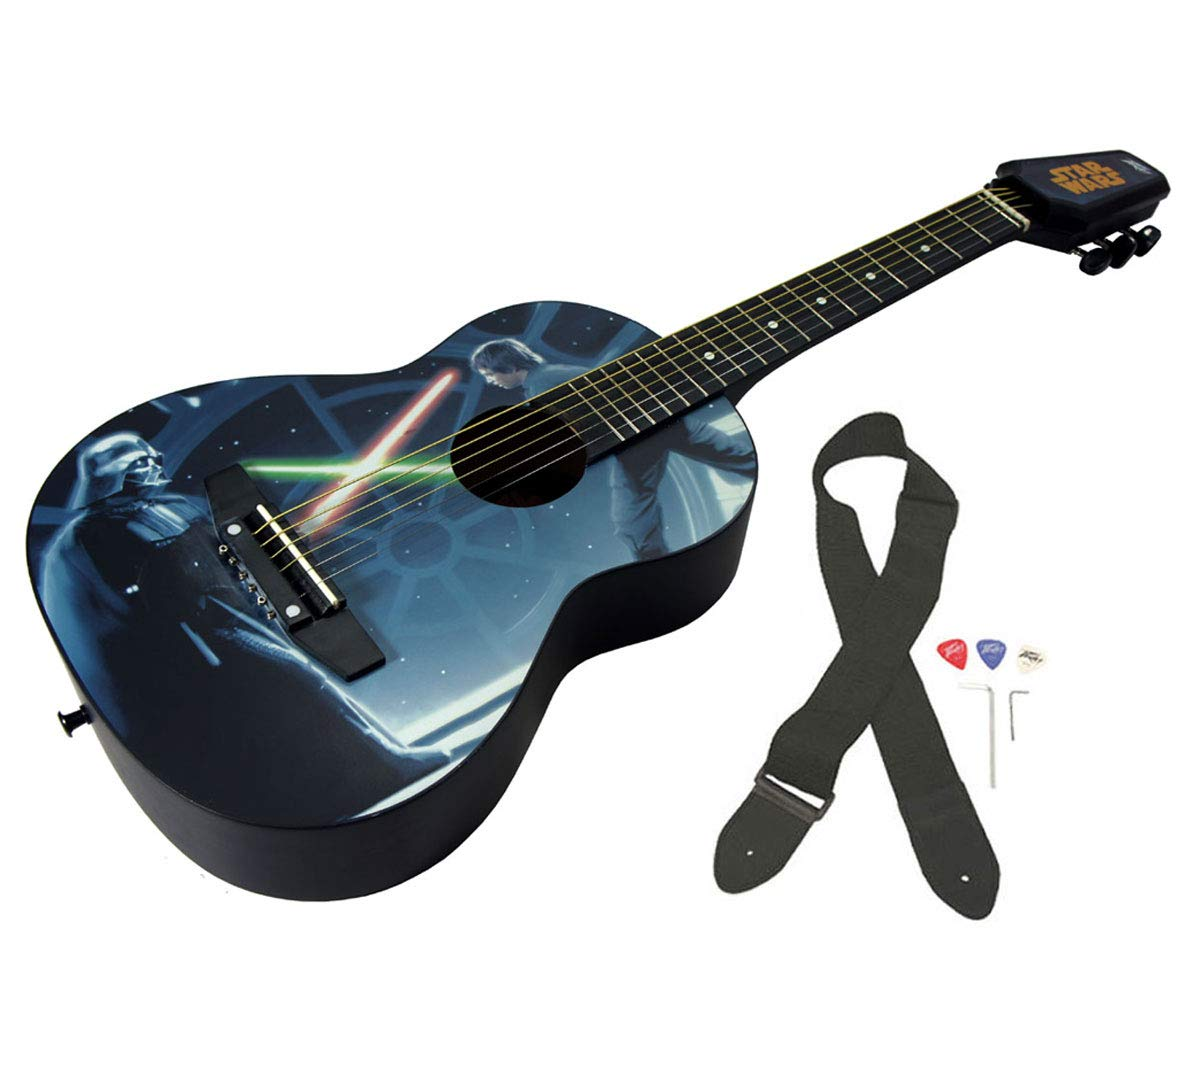 Peavey Star Wars Classic Luke vs. Vader 1/2 Size Student Acoustic 18 Fret First Beginner Guitar by Peavey